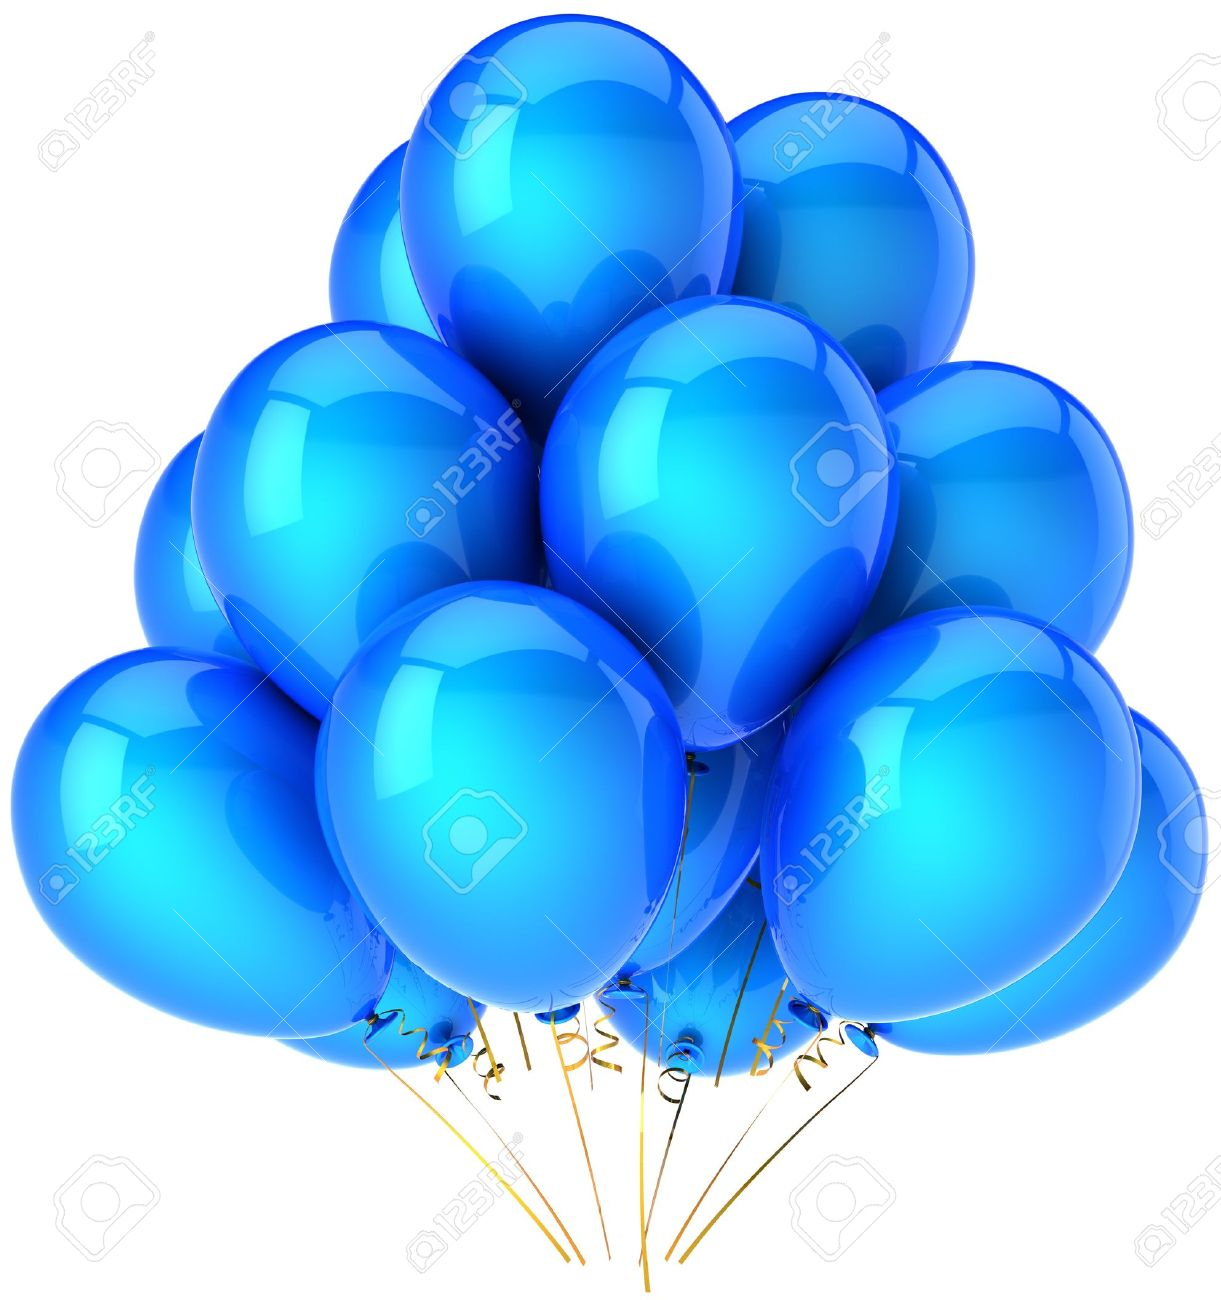 Shiny Balloons Party Balloons Total Blue Cyancolorful Shiny Birthday  Festival